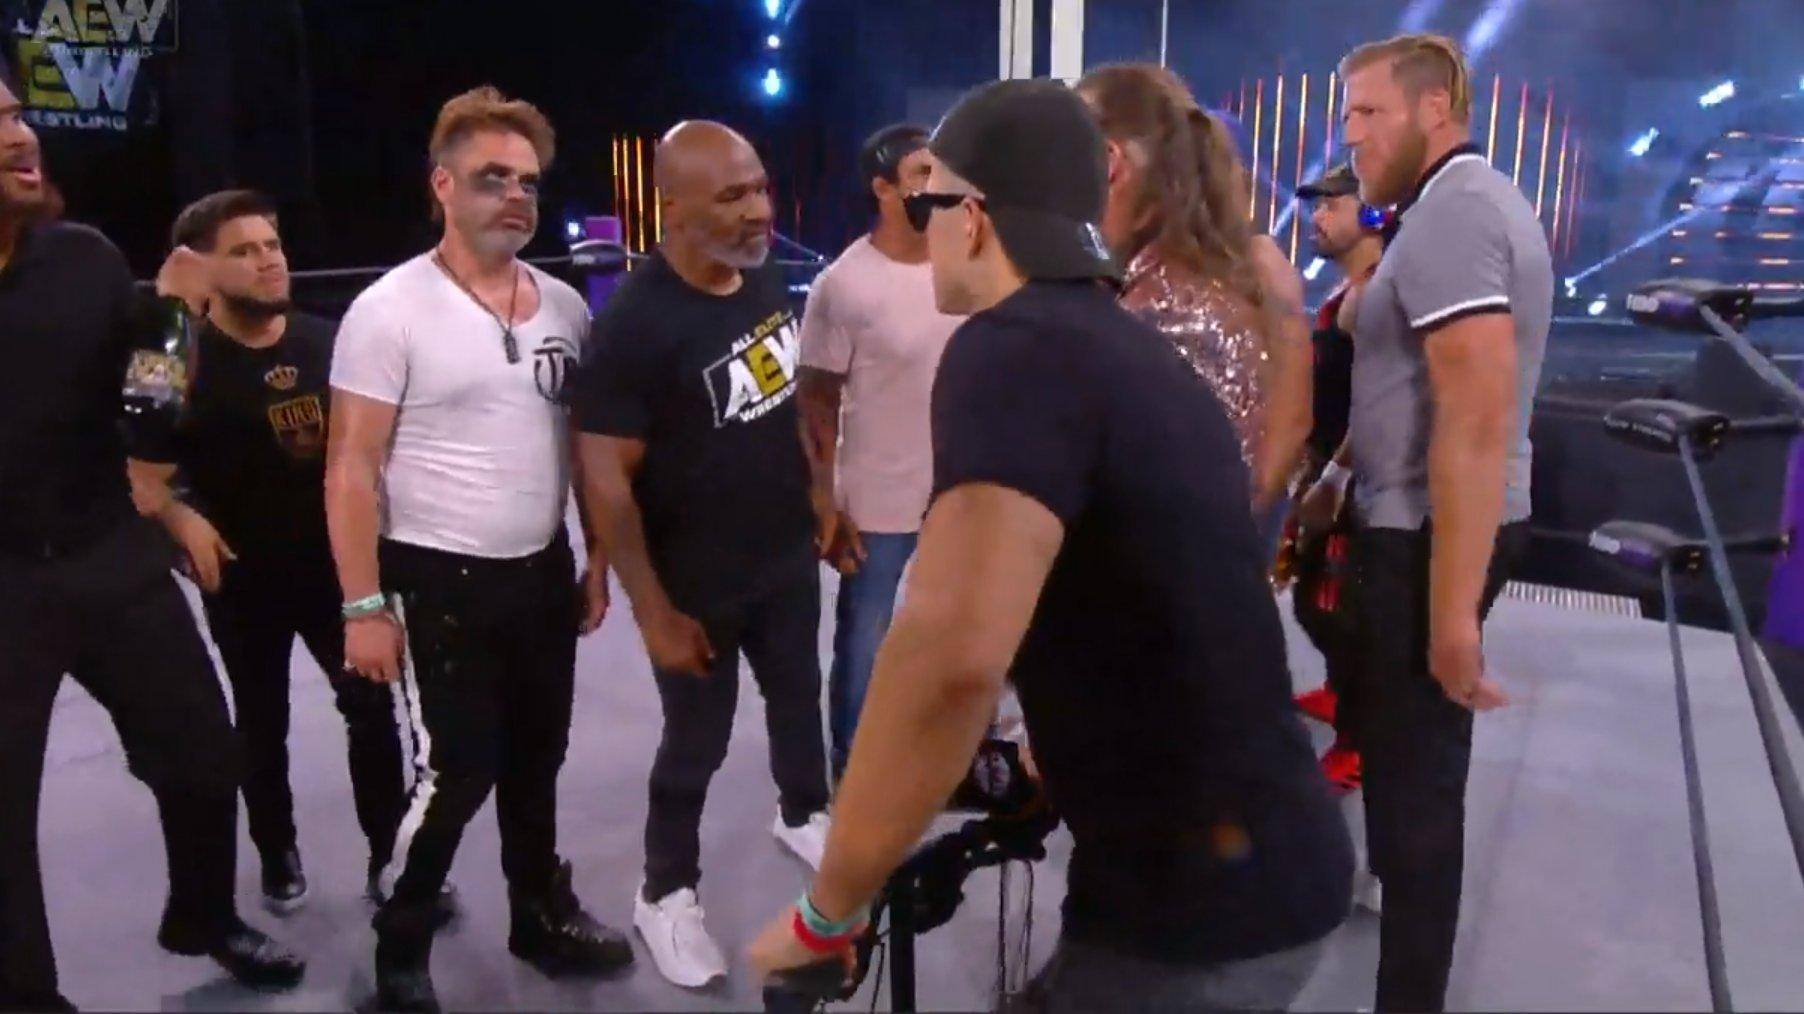 Mike Tyson returns to the wrestling ring in spat with Chris Jericho